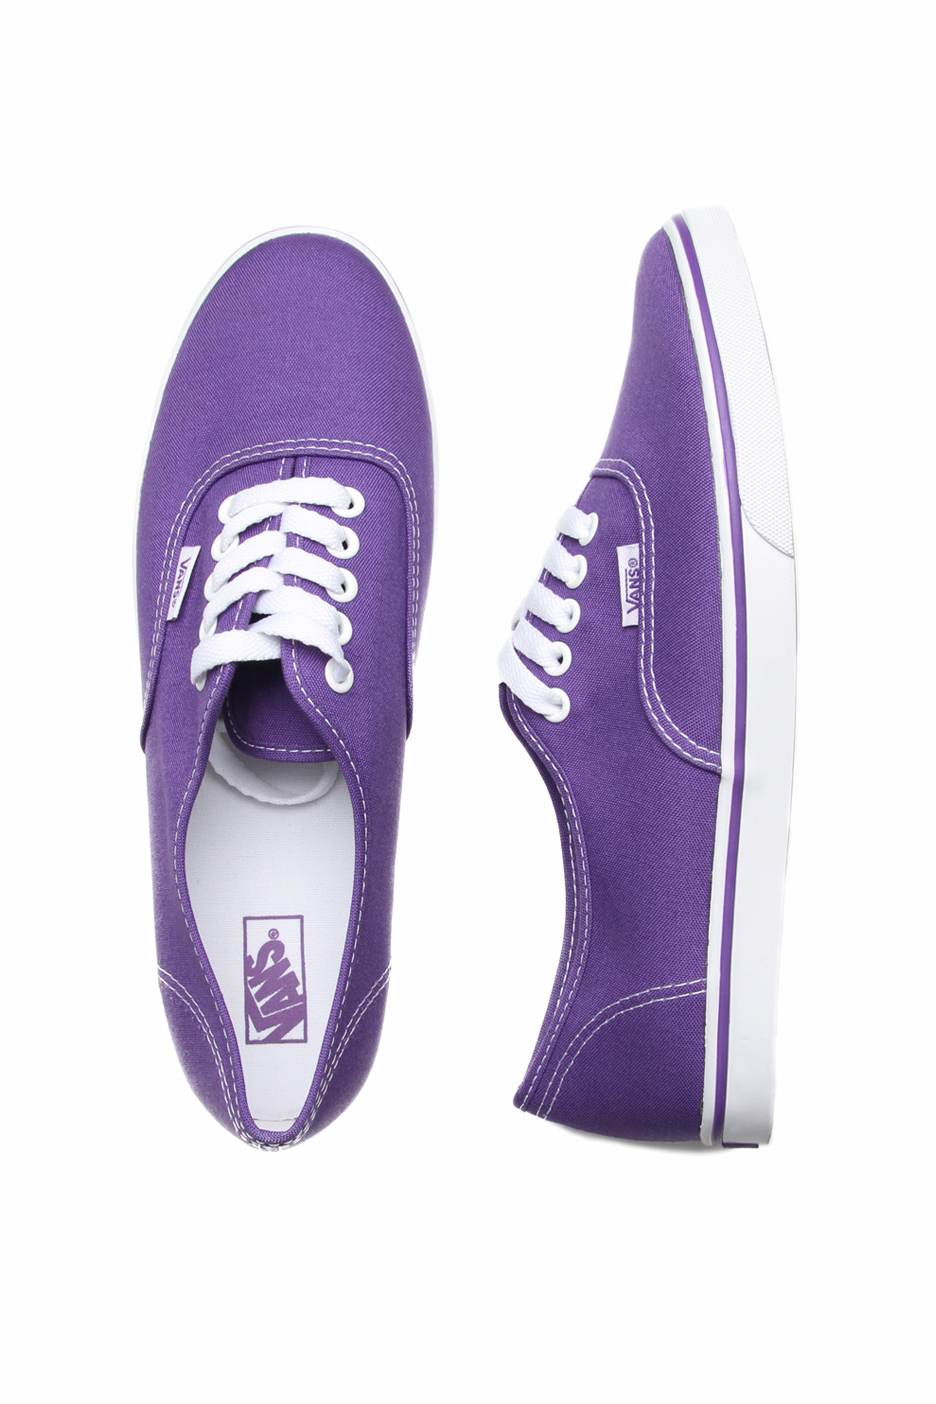 54ed2c6a9429 Vans - Authentic Lo Pro Purple - Girl Shoes - Impericon.com UK